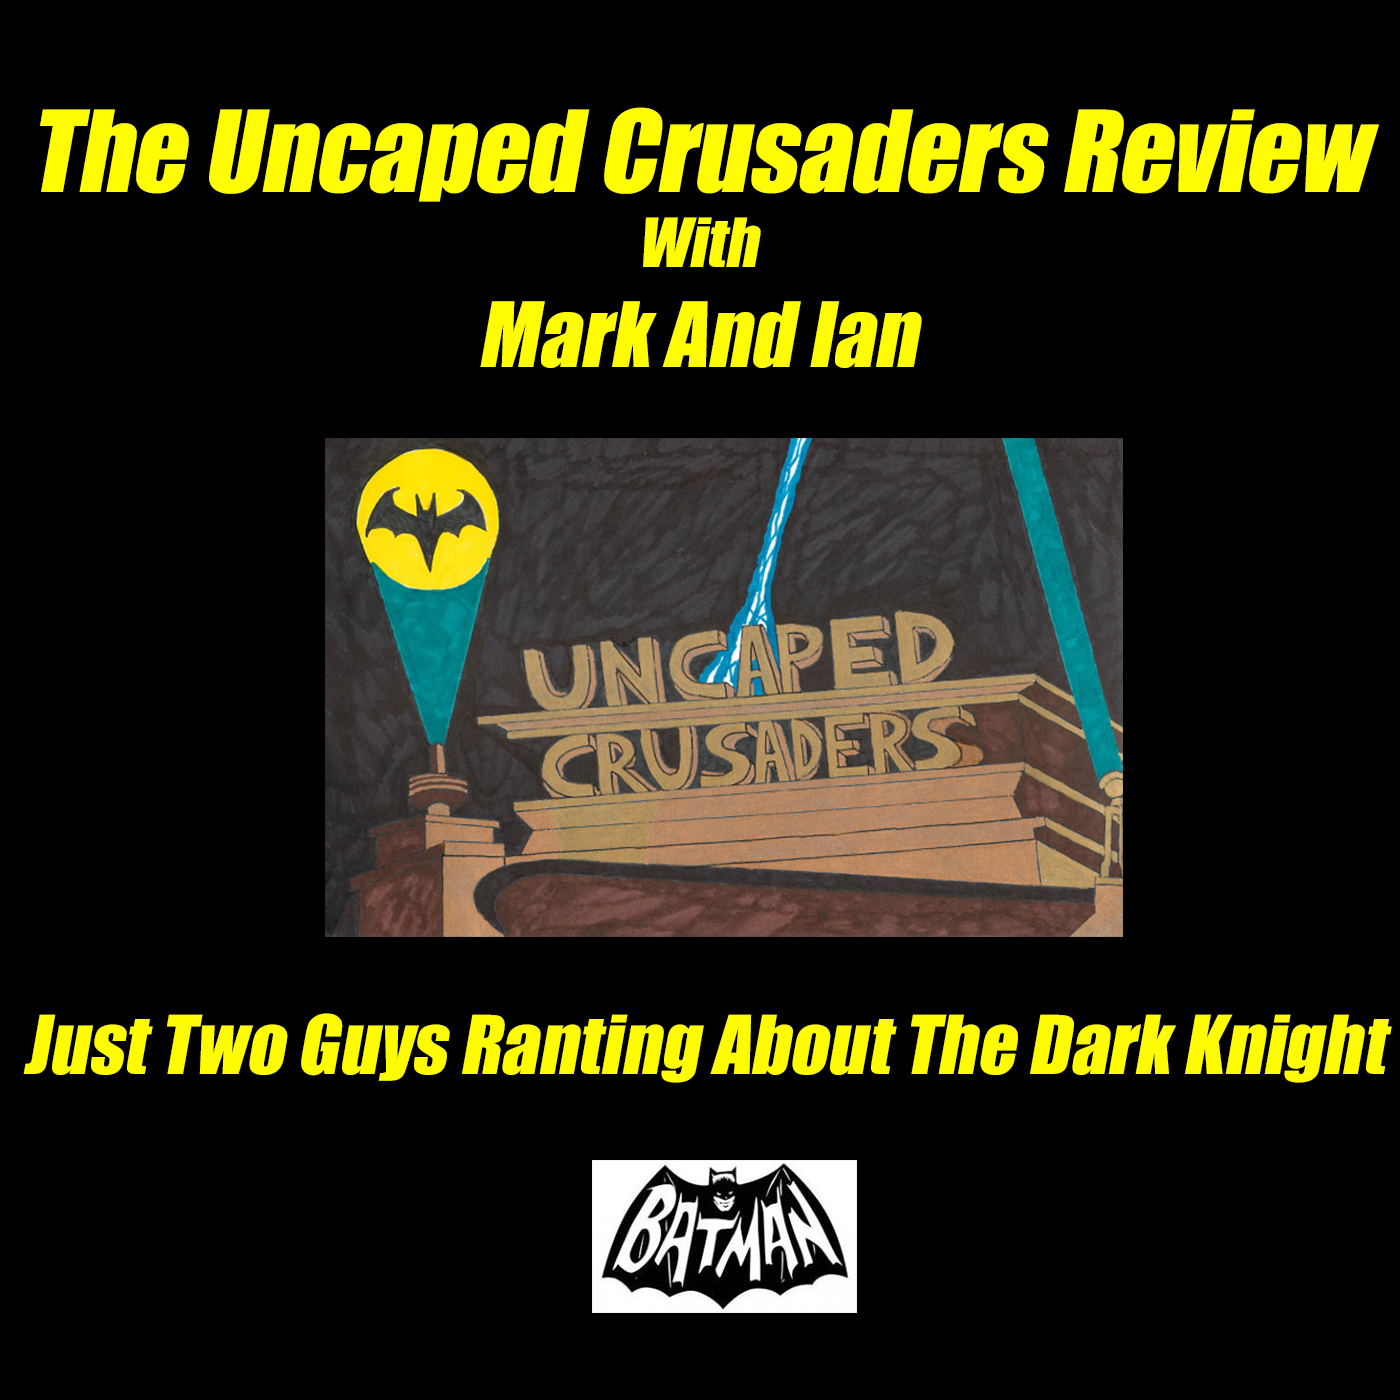 The Uncaped Crusaders Review (A Batman Film Podcast)